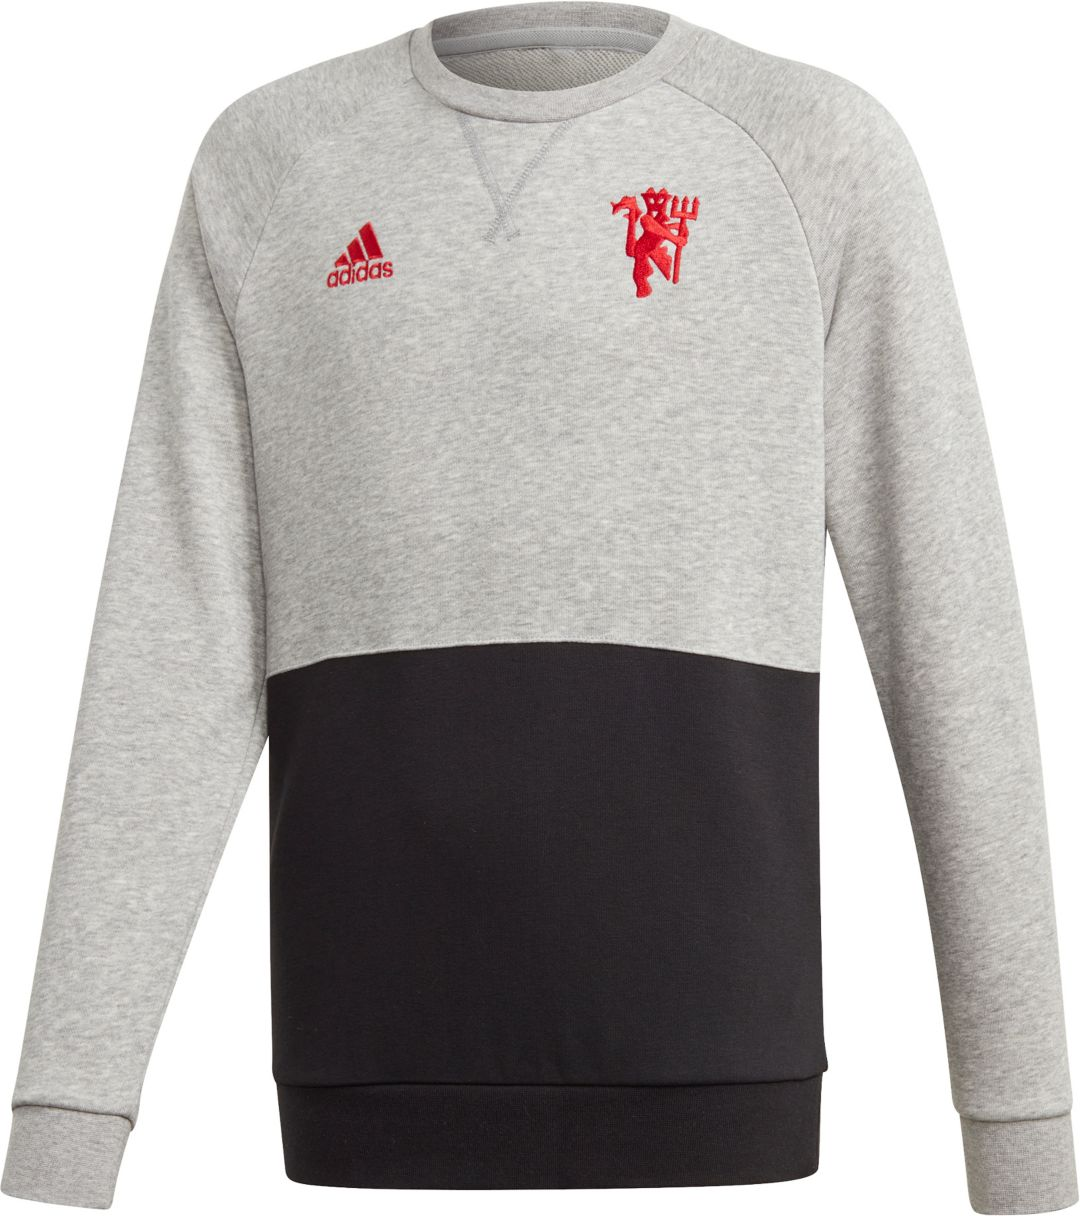 official photos 1b639 c16b0 adidas Youth Manchester United Crest Heather Grey Crew Neck Sweatshirt